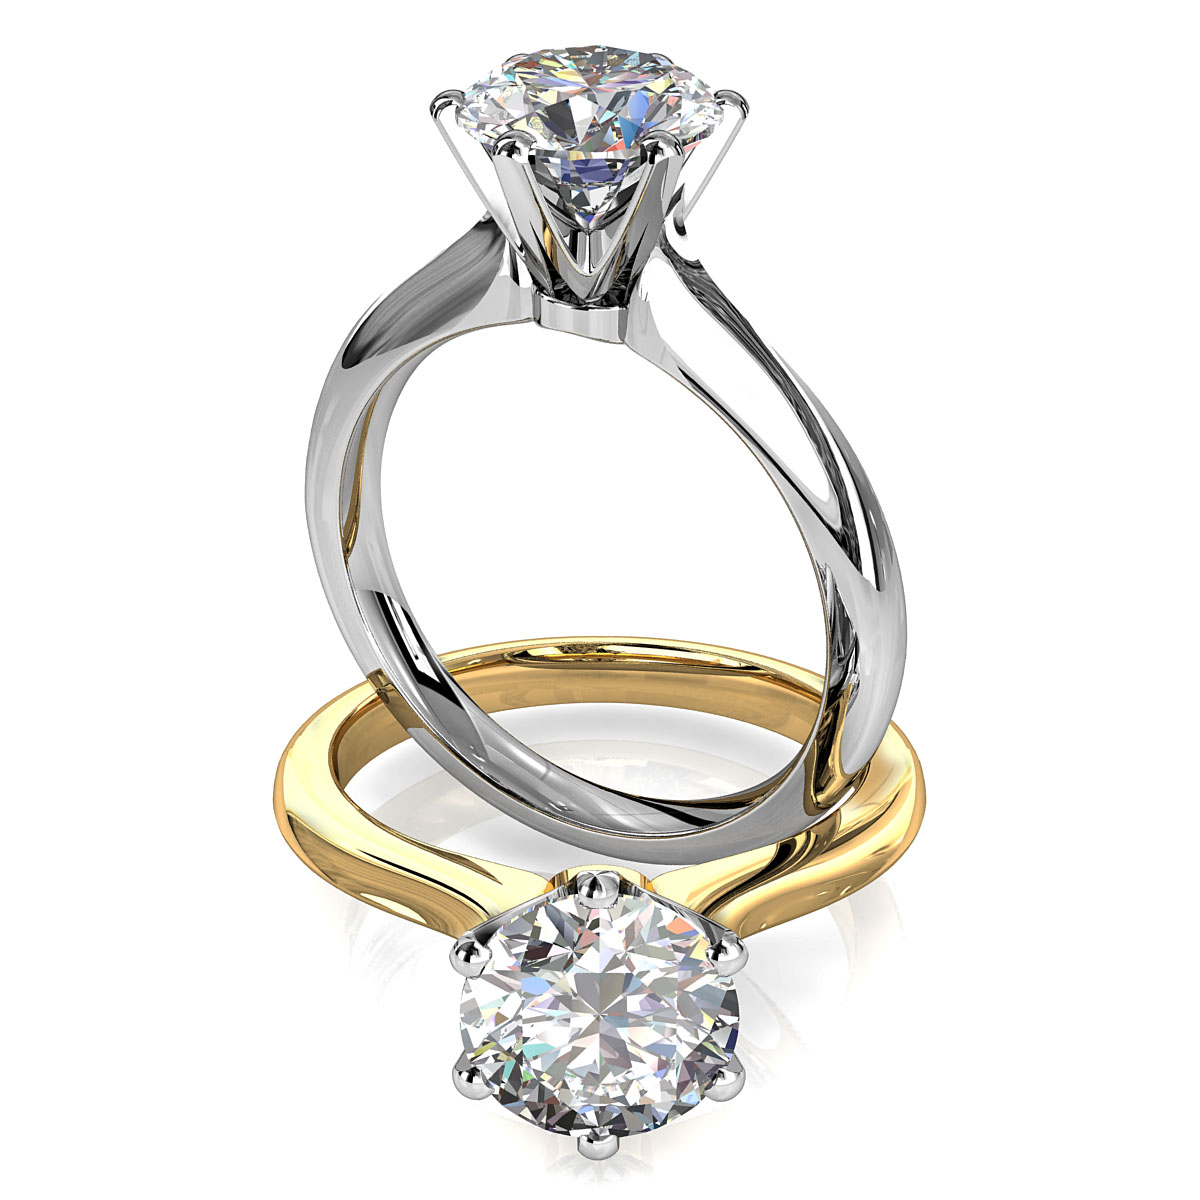 Round Brilliant Cut Solitaire Diamond Engagement Ring, 6 Fine Button Claws Set on Subtle Knife Edge Tapered Rounded Band with Crown Undersetting.